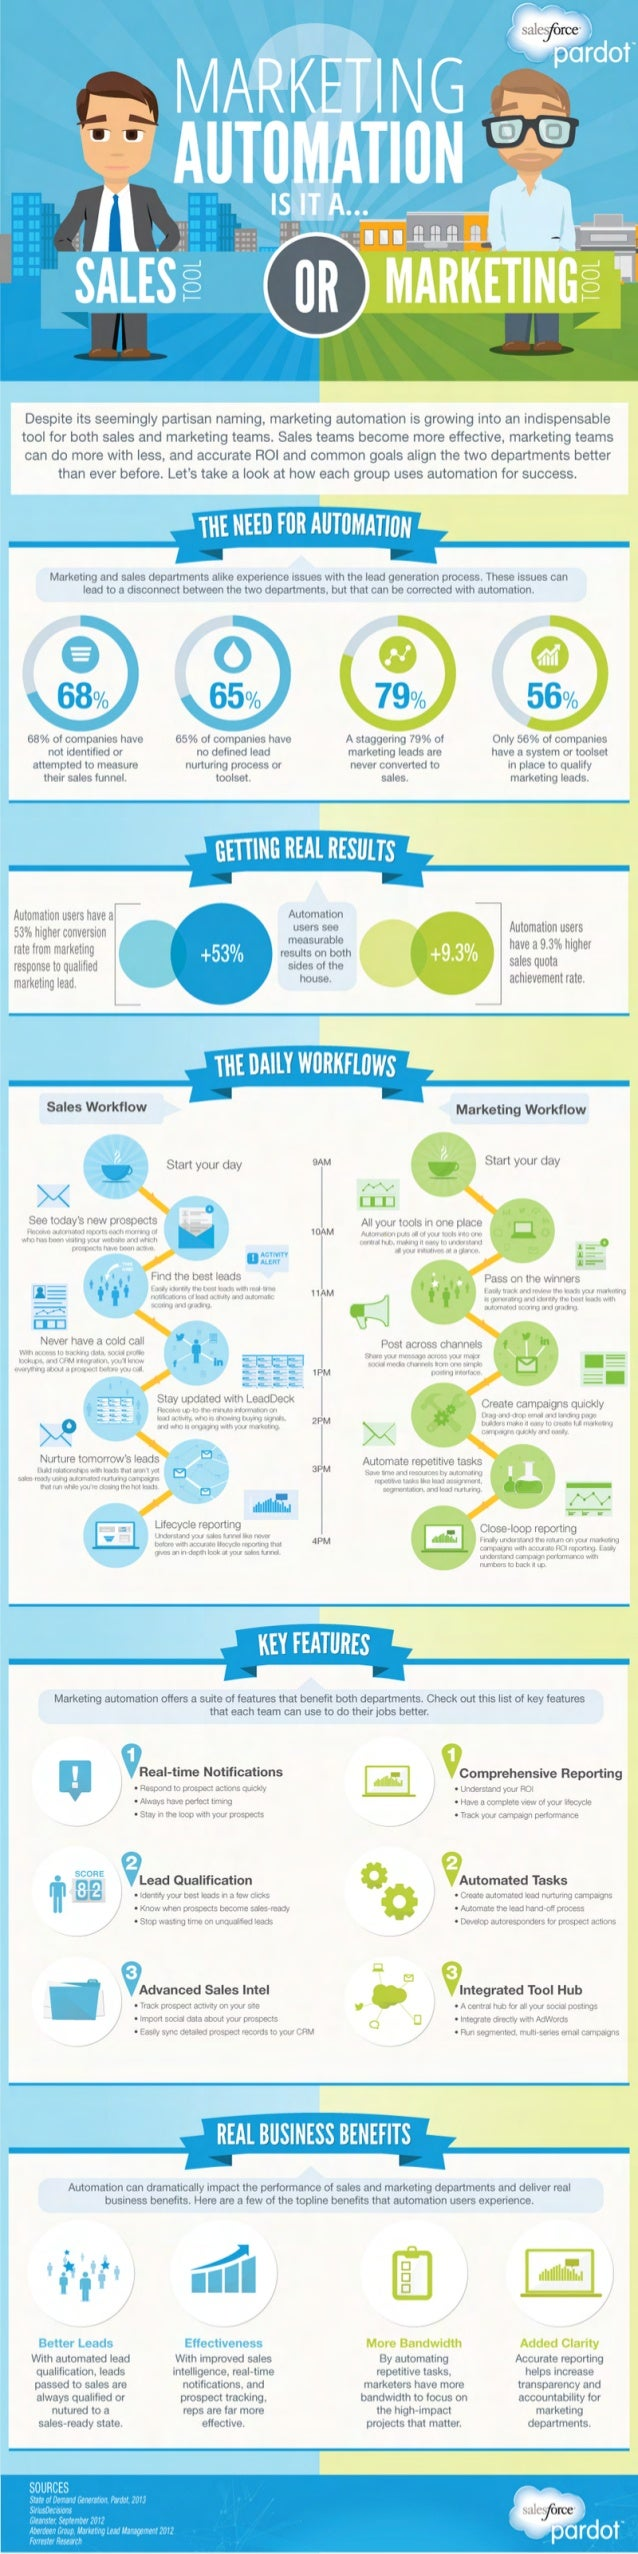 Marketing Automation - Sales Tool or Marketing Tool